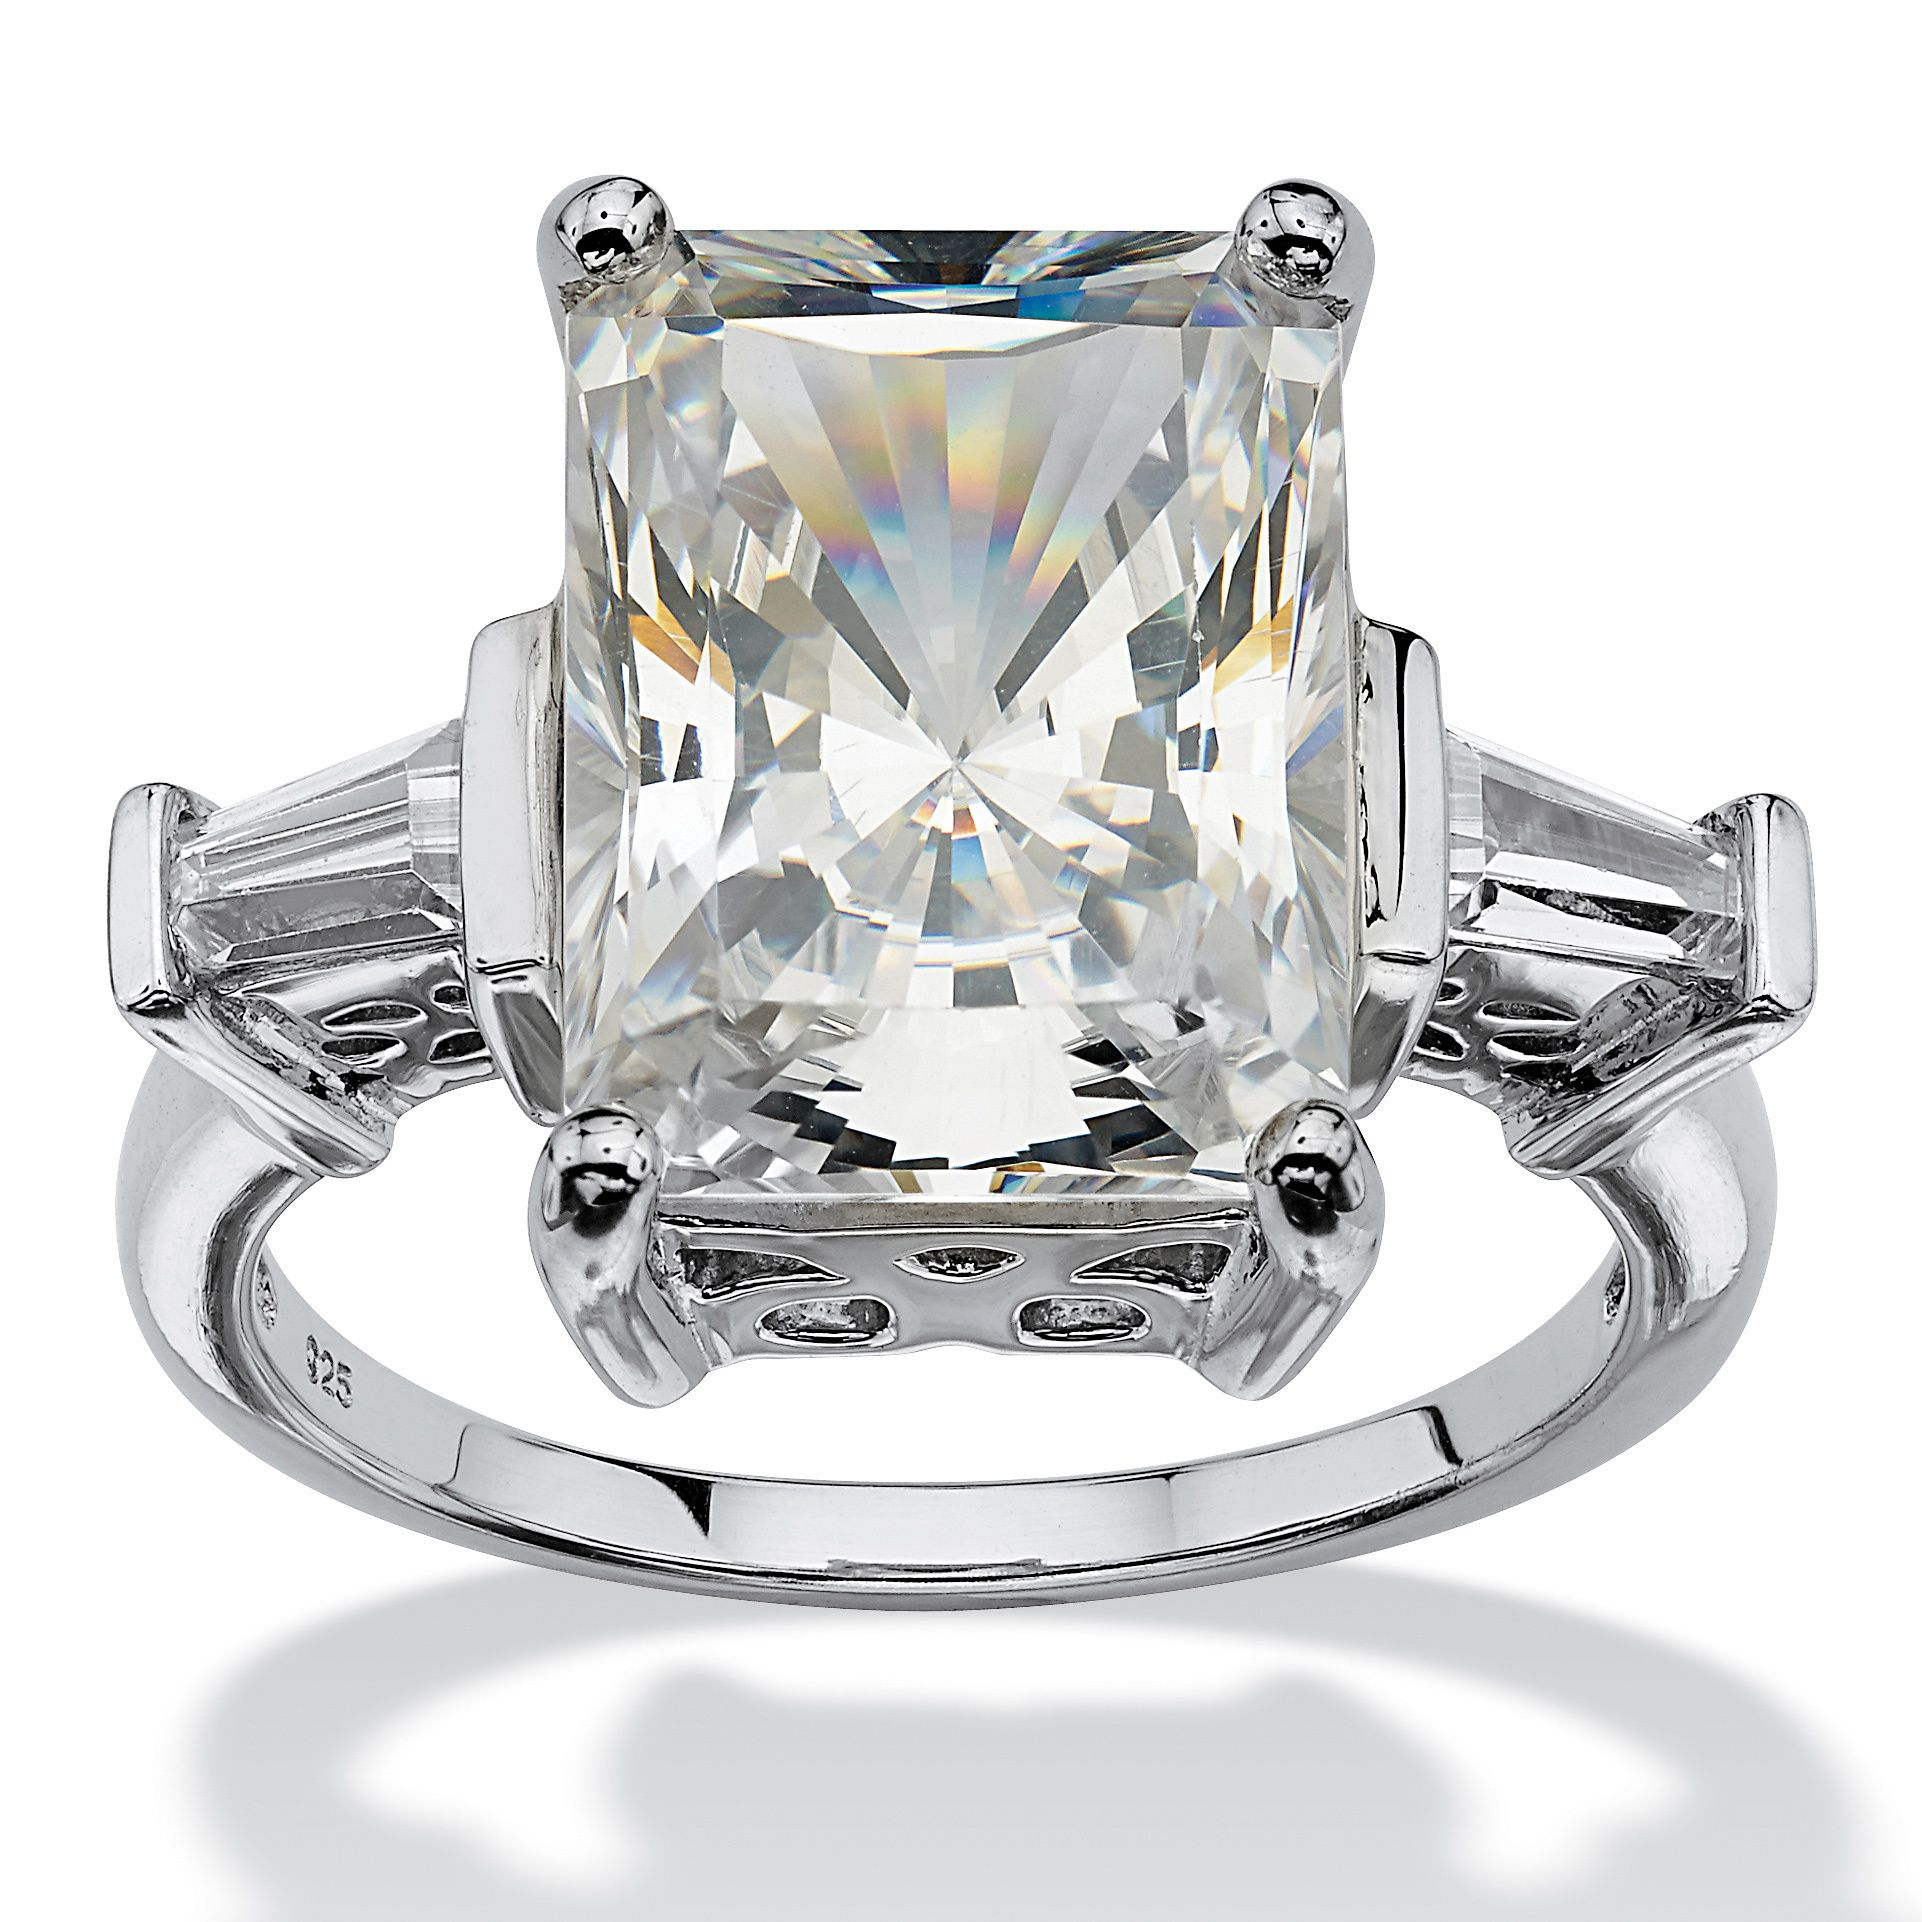 Palm Beach Jewelry PalmBeach 11.93 TCW Emerald-Cut Cubic Zirconia Platinum over Sterling Silver Bridal Engagement Cutout Ring Glam CZ